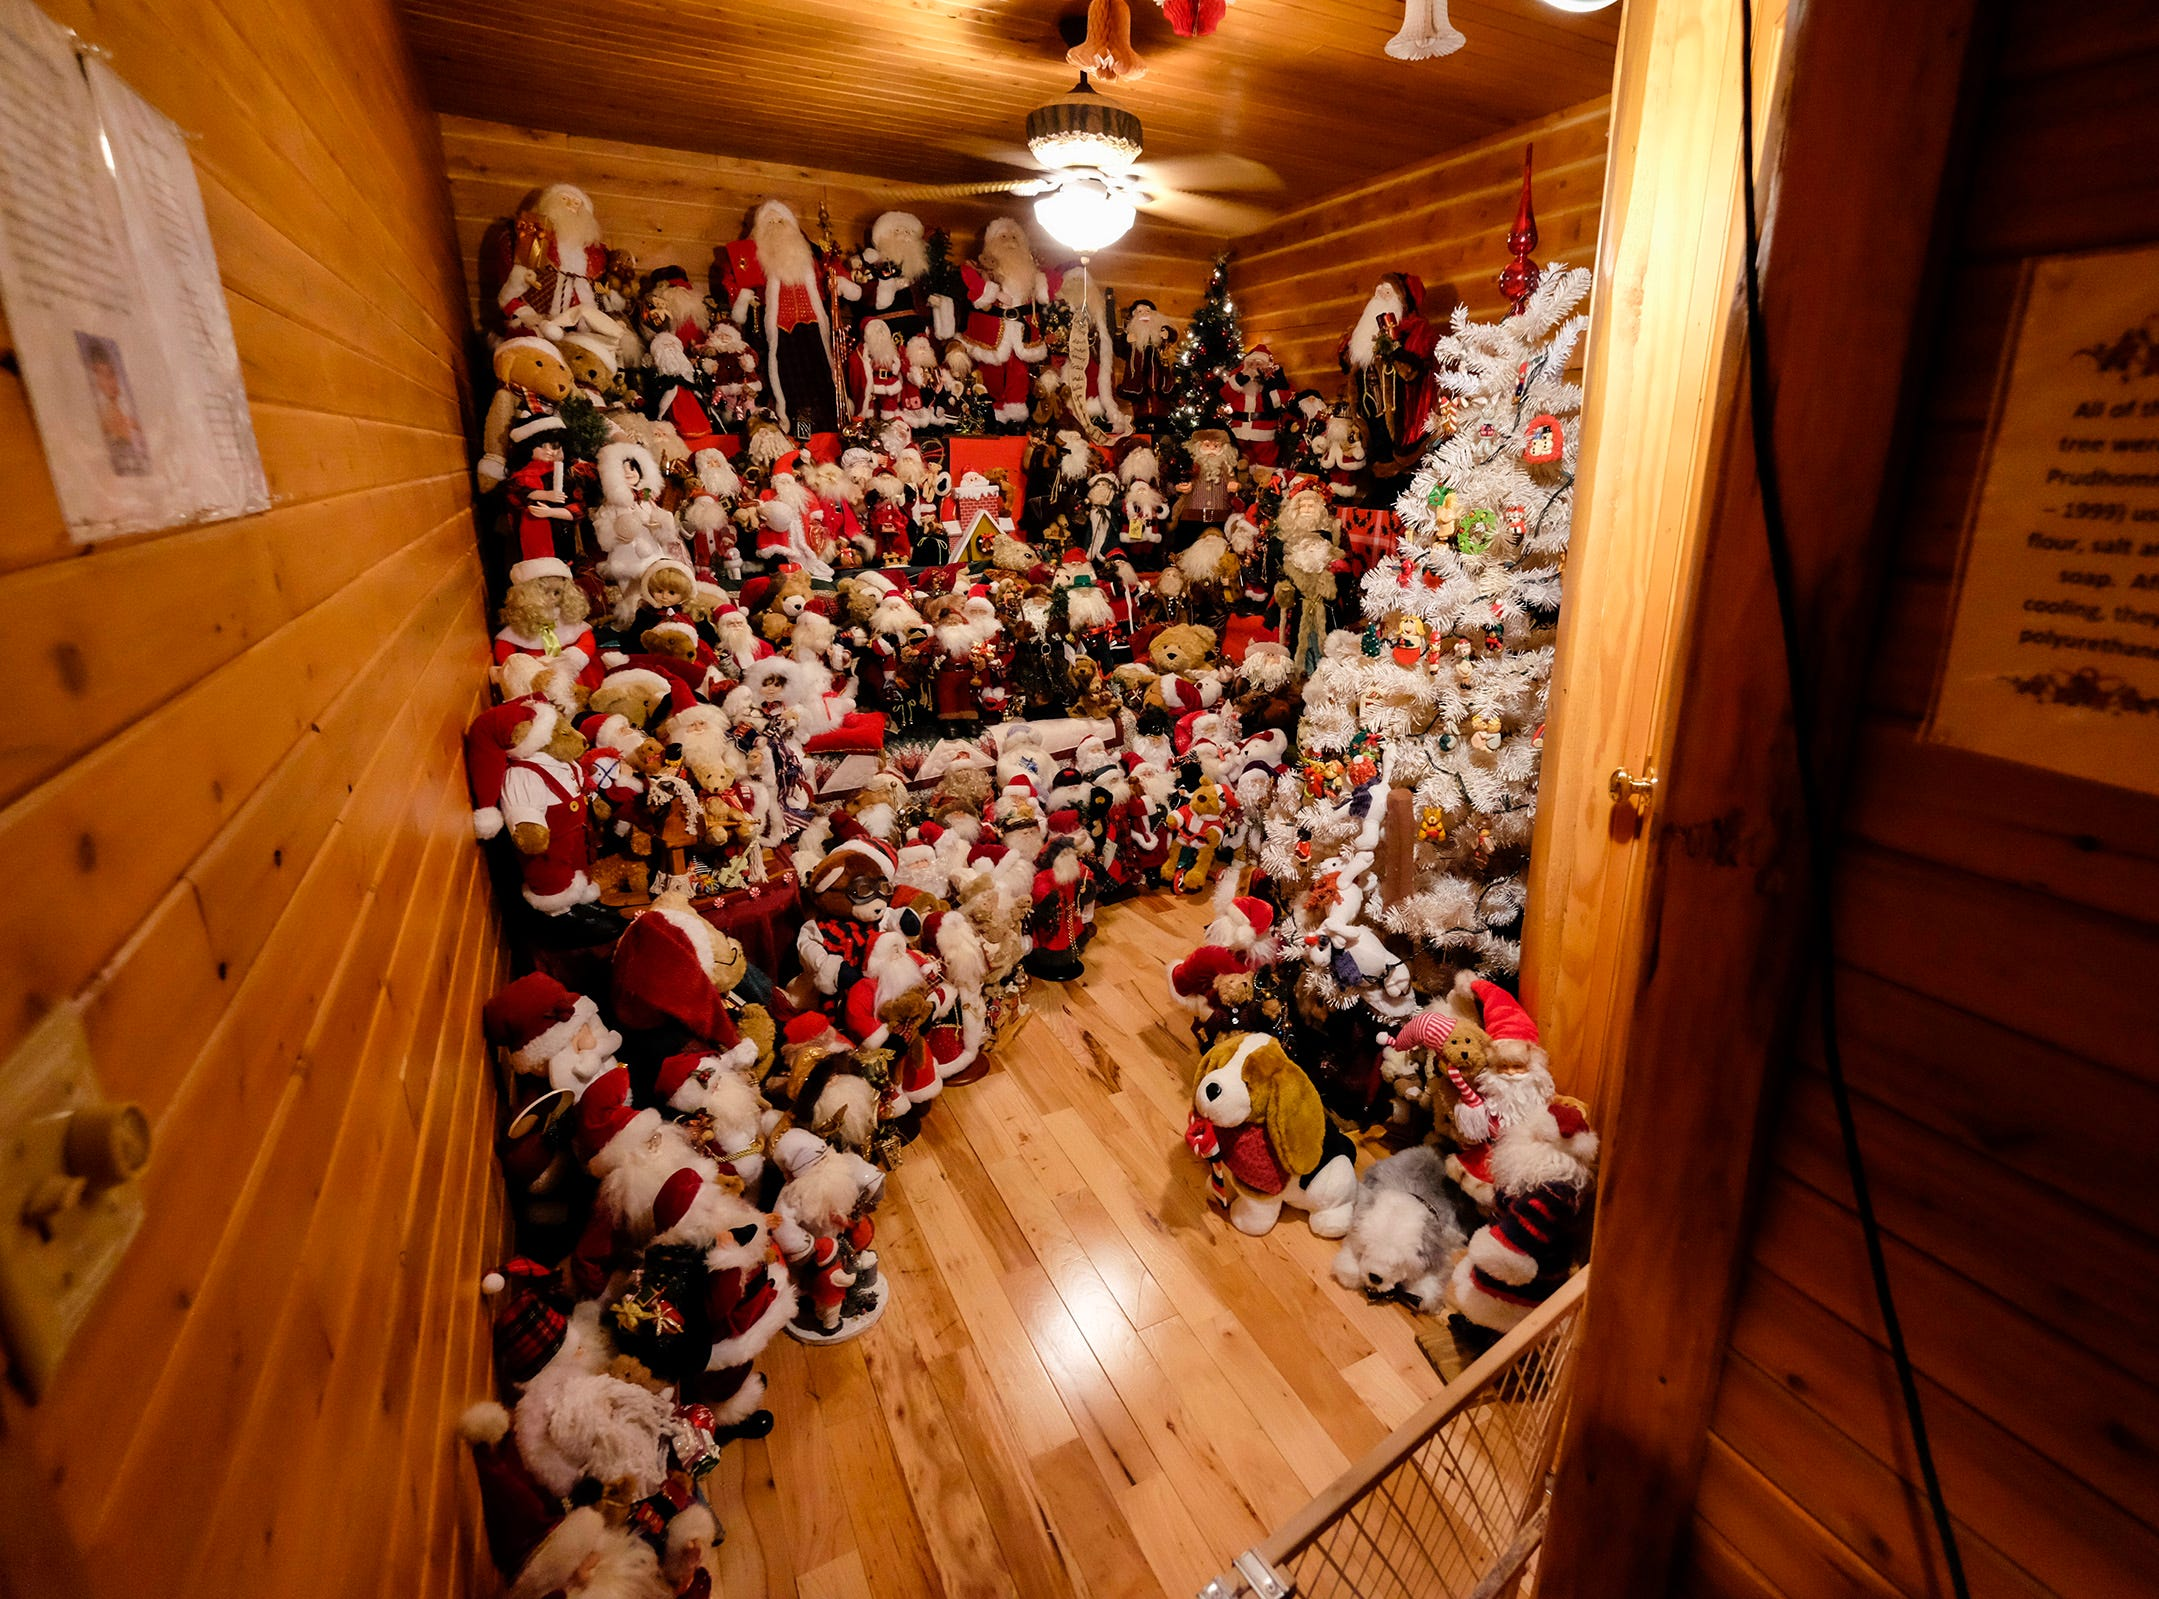 Handmade Santa Claus decorations fill a room for the annual History of the Christmas Tree Walk at Al and Diane Kodet's Algonac home.